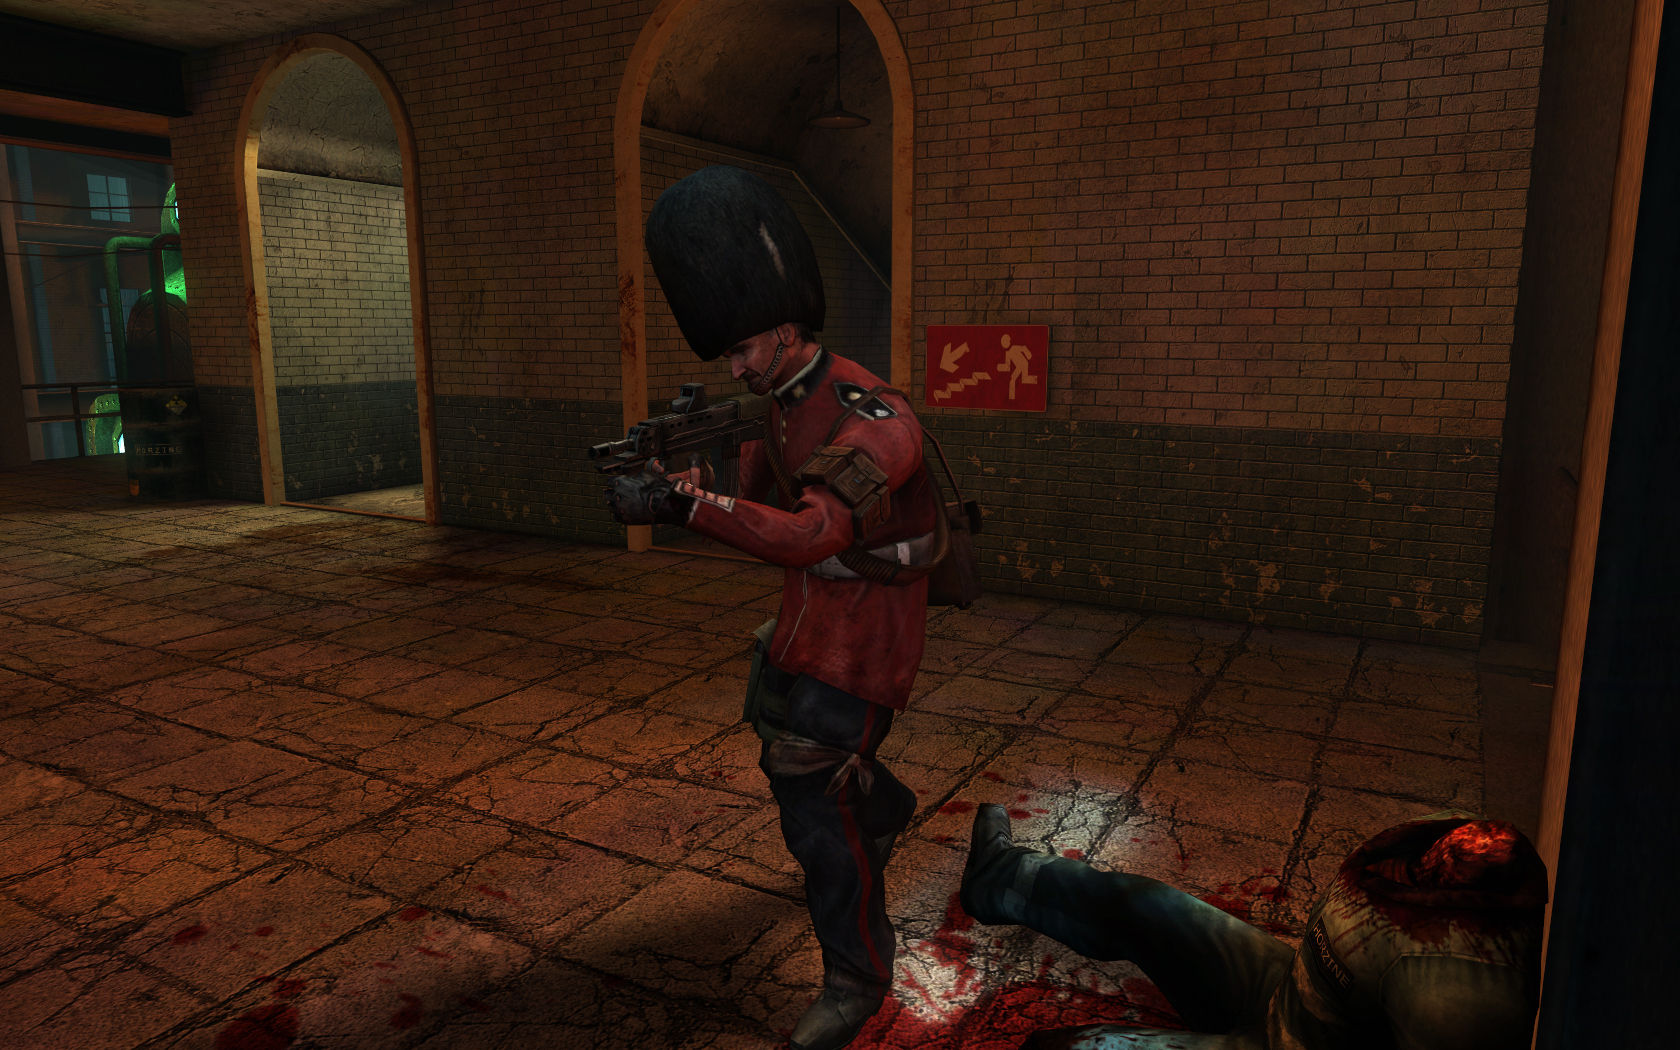 Killing floor - neon character pack download free pc